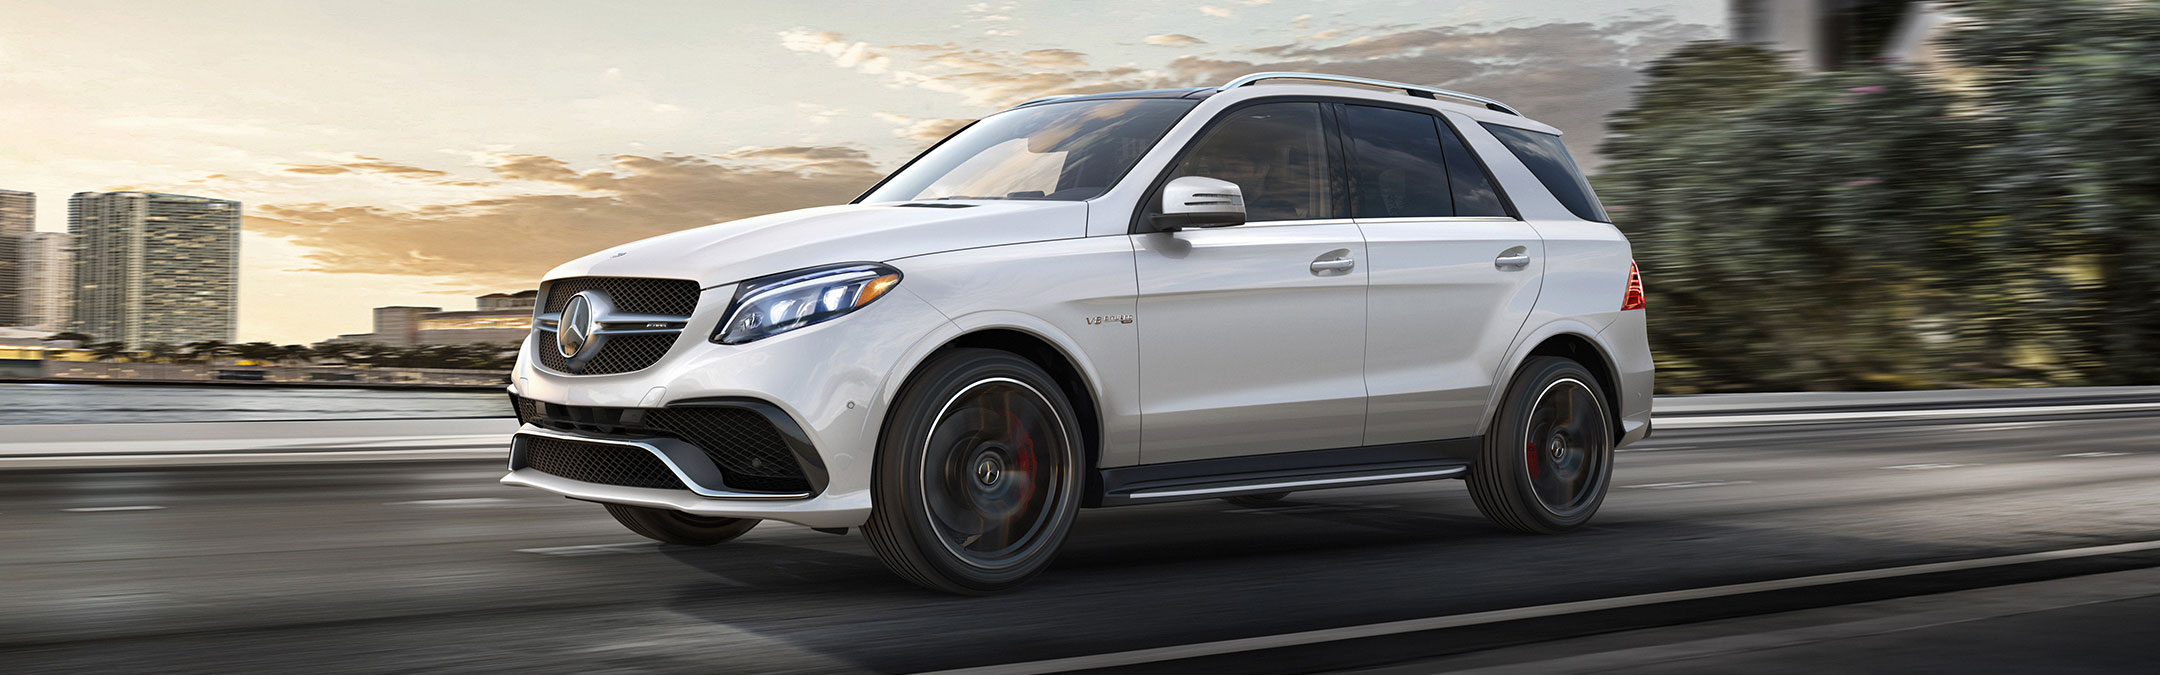 2018 Mercedes-AMG GLE Coupe Performance